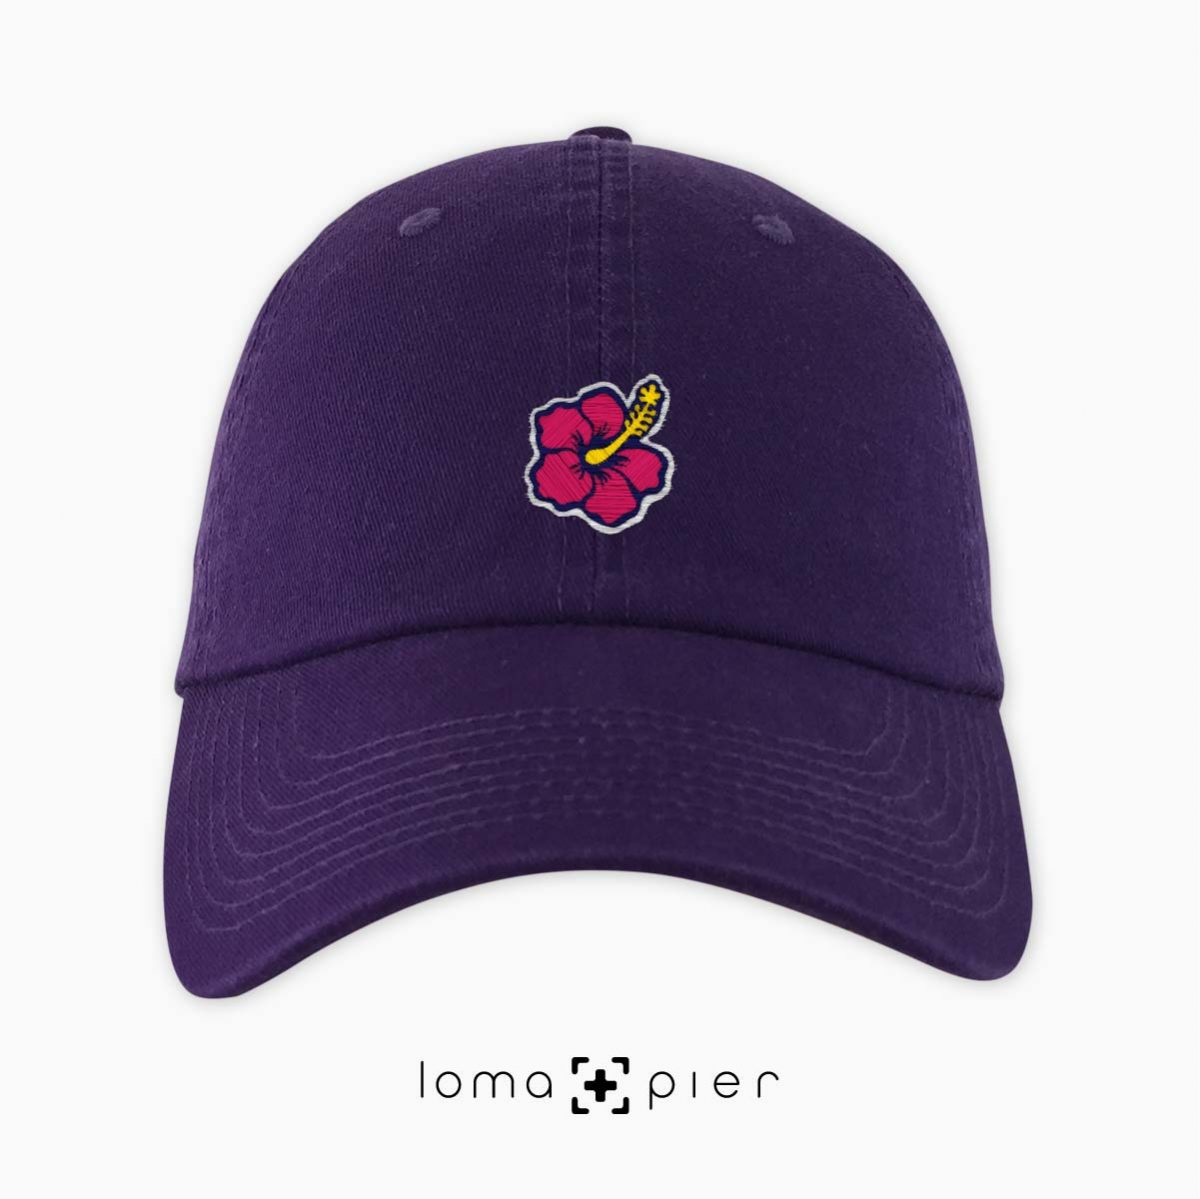 hibiscus hawaiian flower icon dad hat in purple by loma+pier hat store